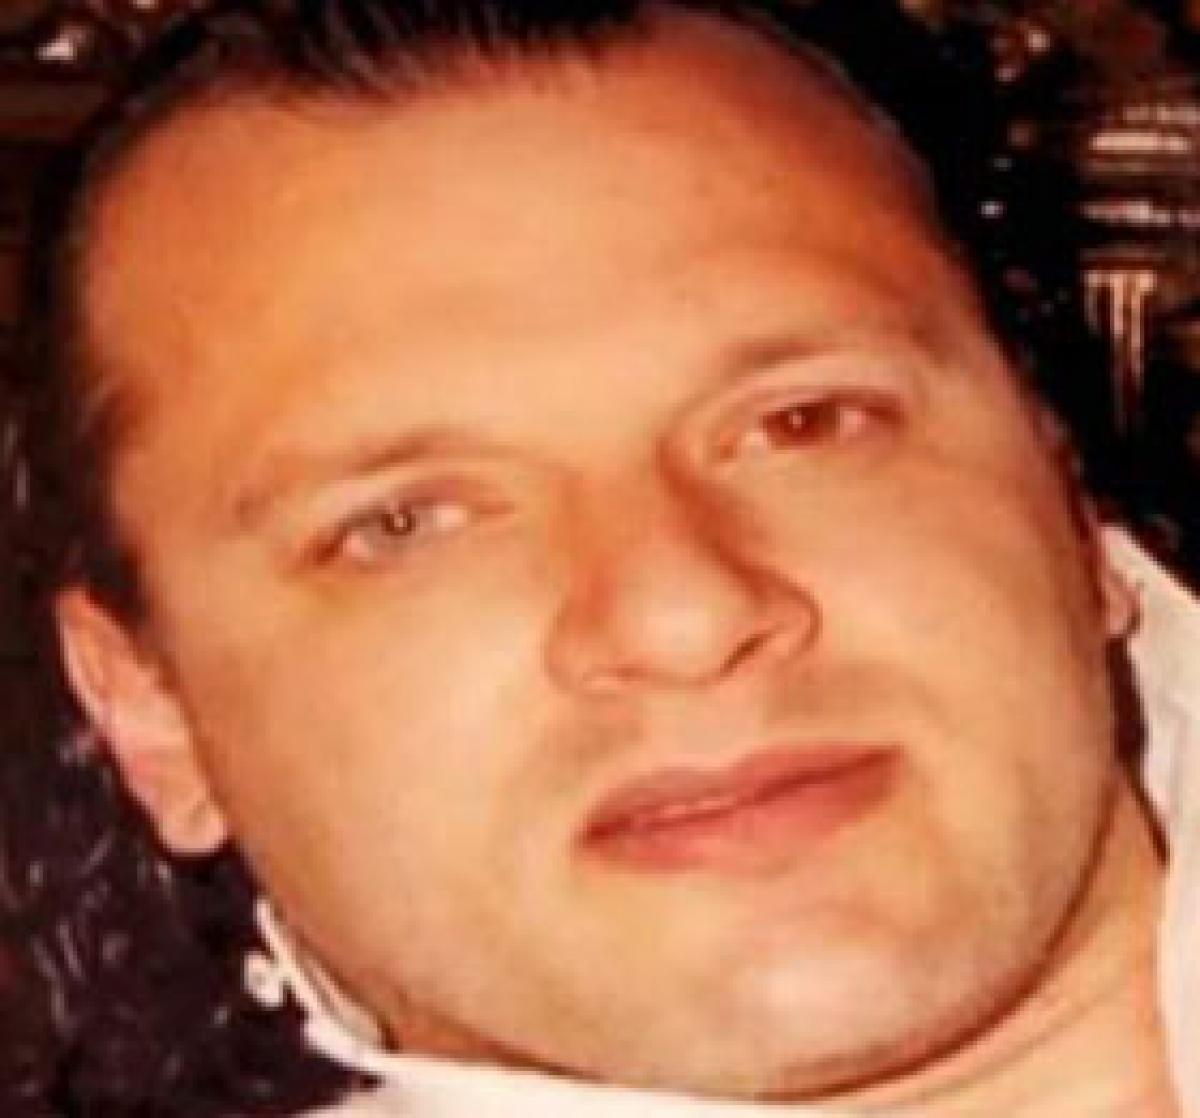 Headley to testify in 26/11 case, says his attorney